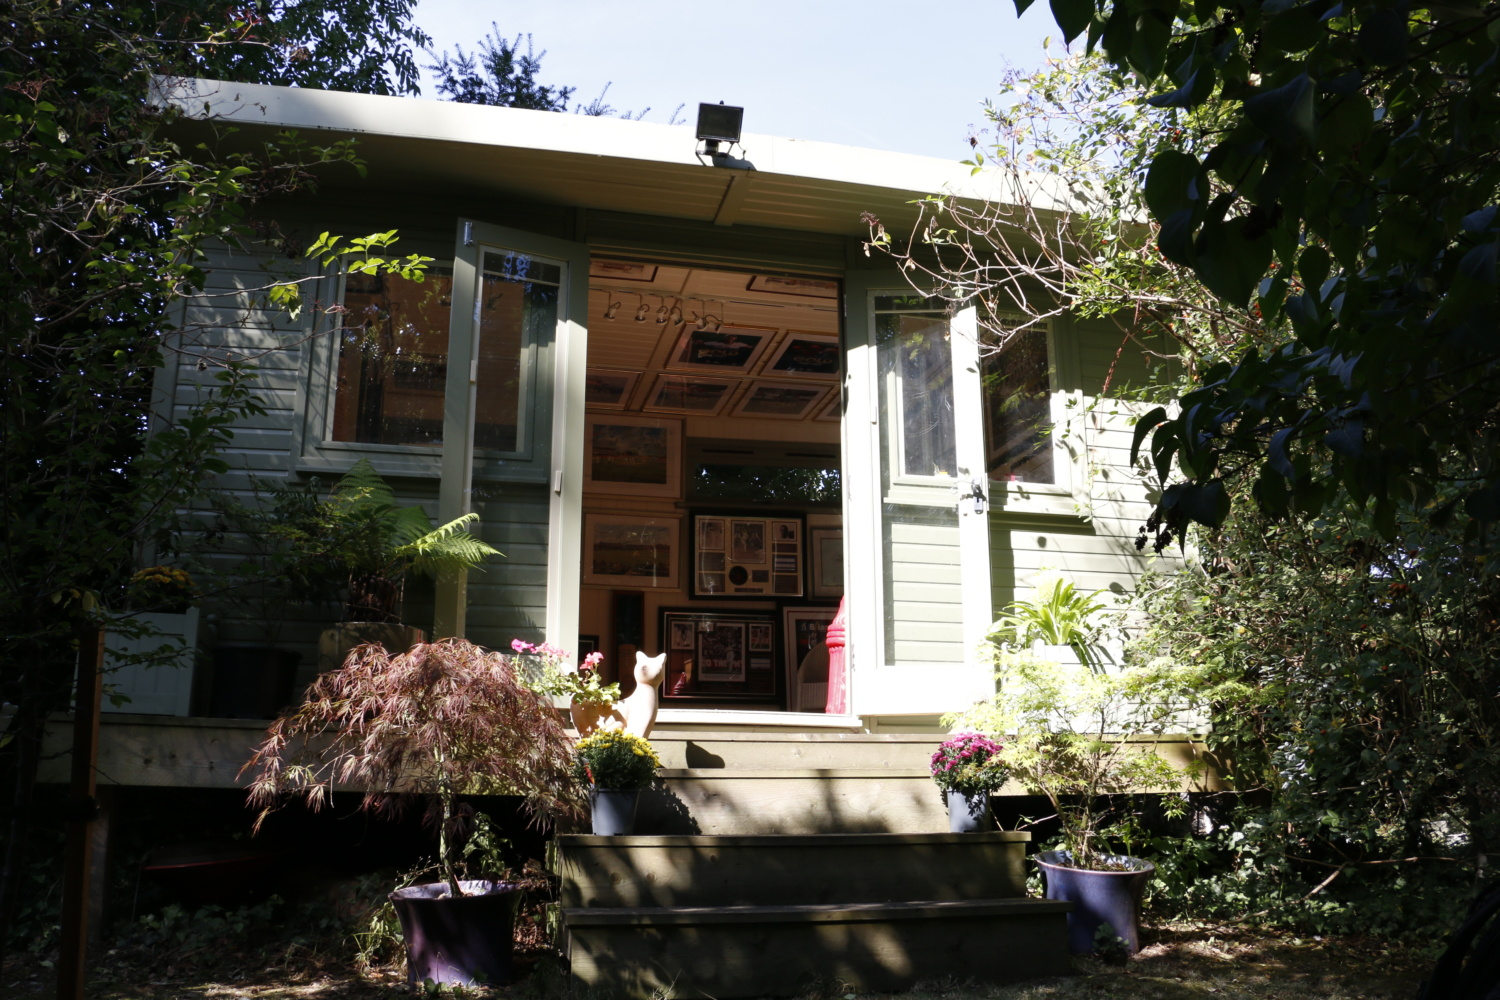 Exterior of collector's cabin